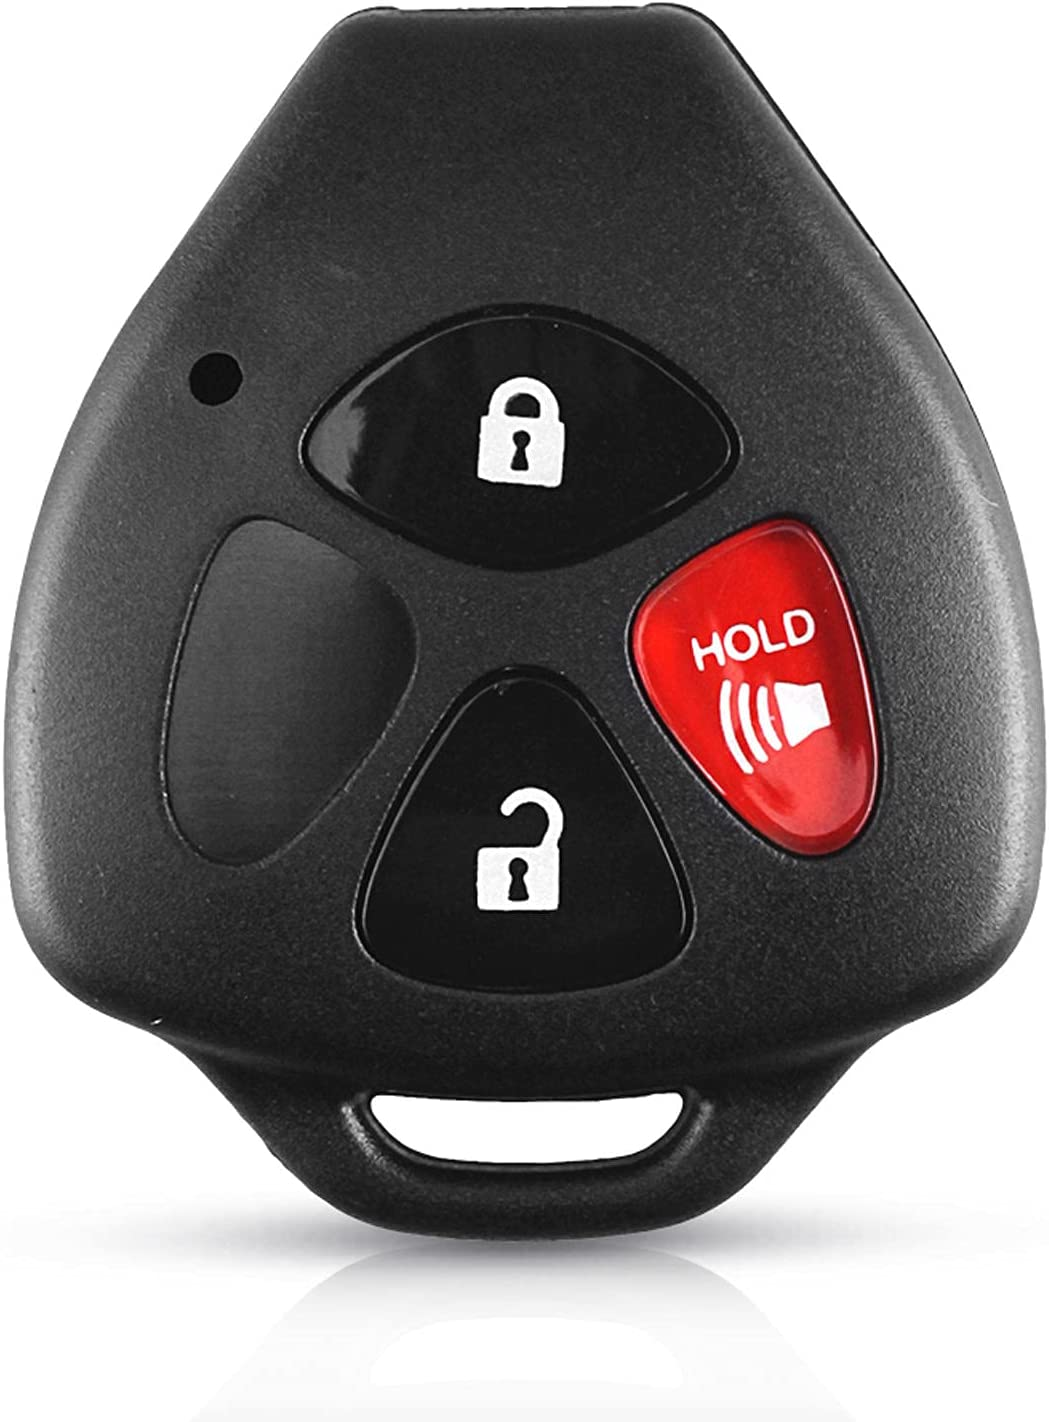 FLJKCT Car Key Shell Lowest price challenge 2 5% OFF 3 Buttons Remote for Toyo 4